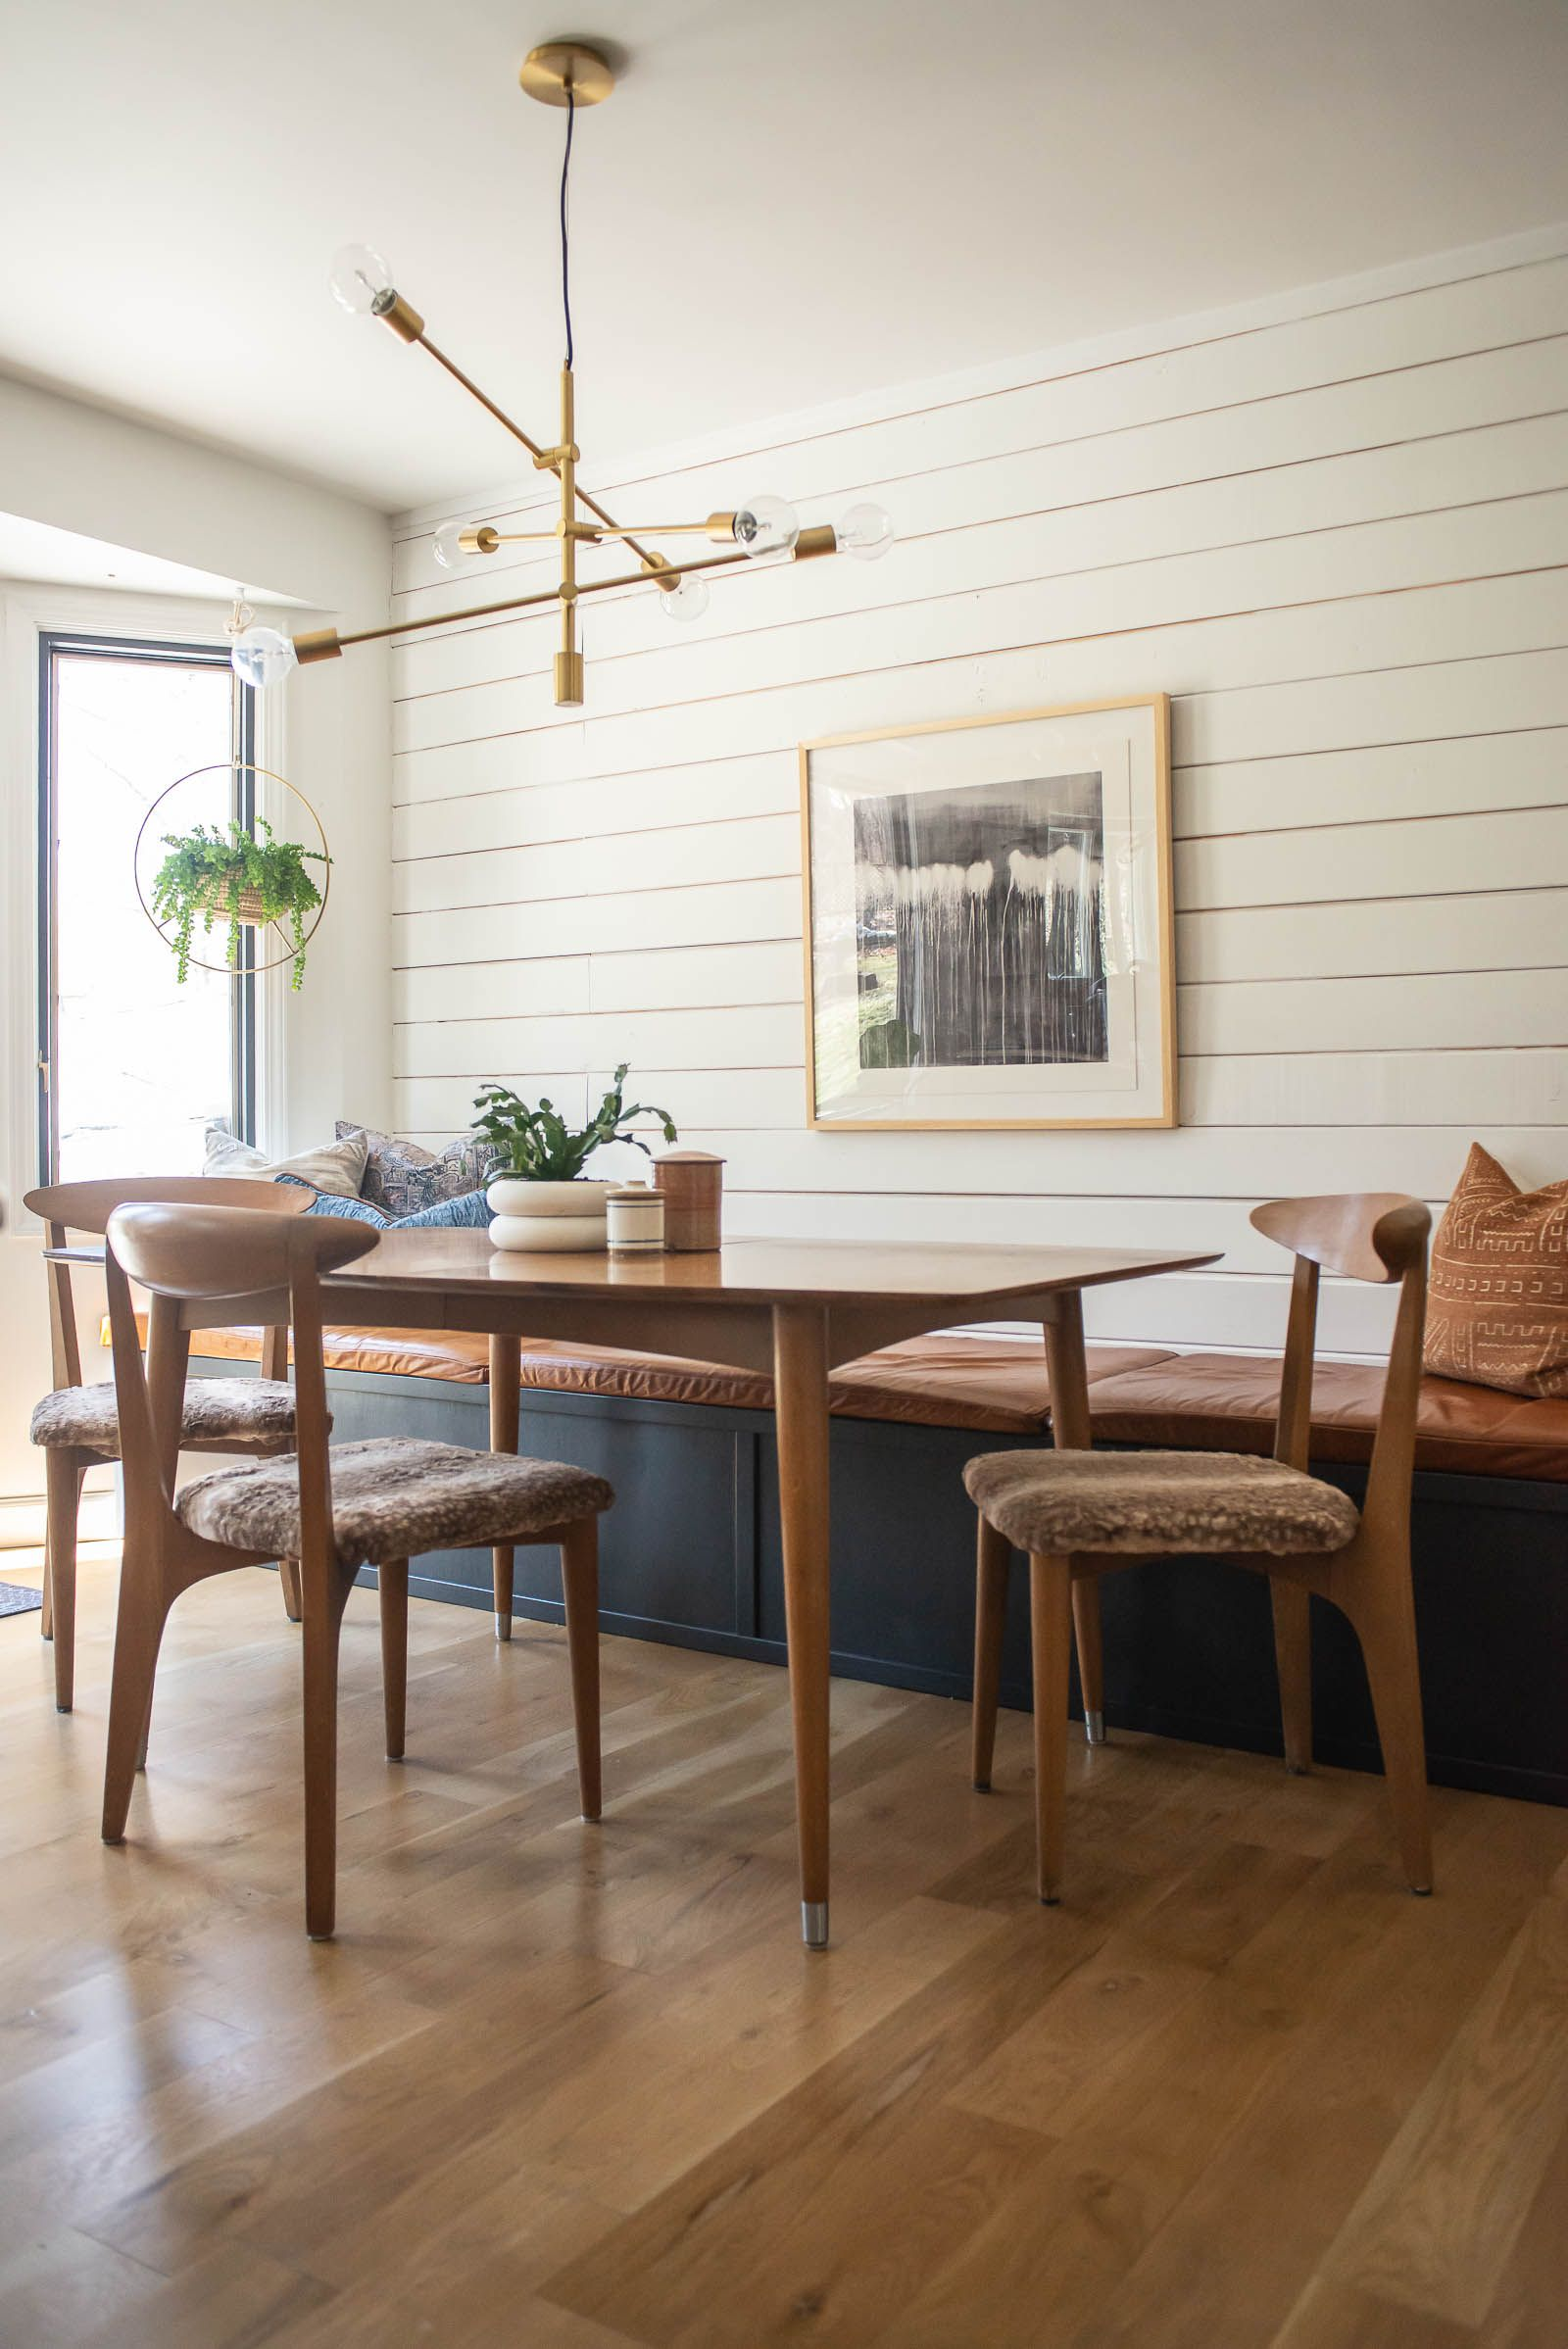 Chair Makeover Featuring How to Fix Old Chairs  Bigger Than the Three of Us is part of Chair makeover - Chair makeover featuring how to fix old chairs  Fix loose chair backs with a simple pipe clamp and transform a chair with new upholstery  howto chairs